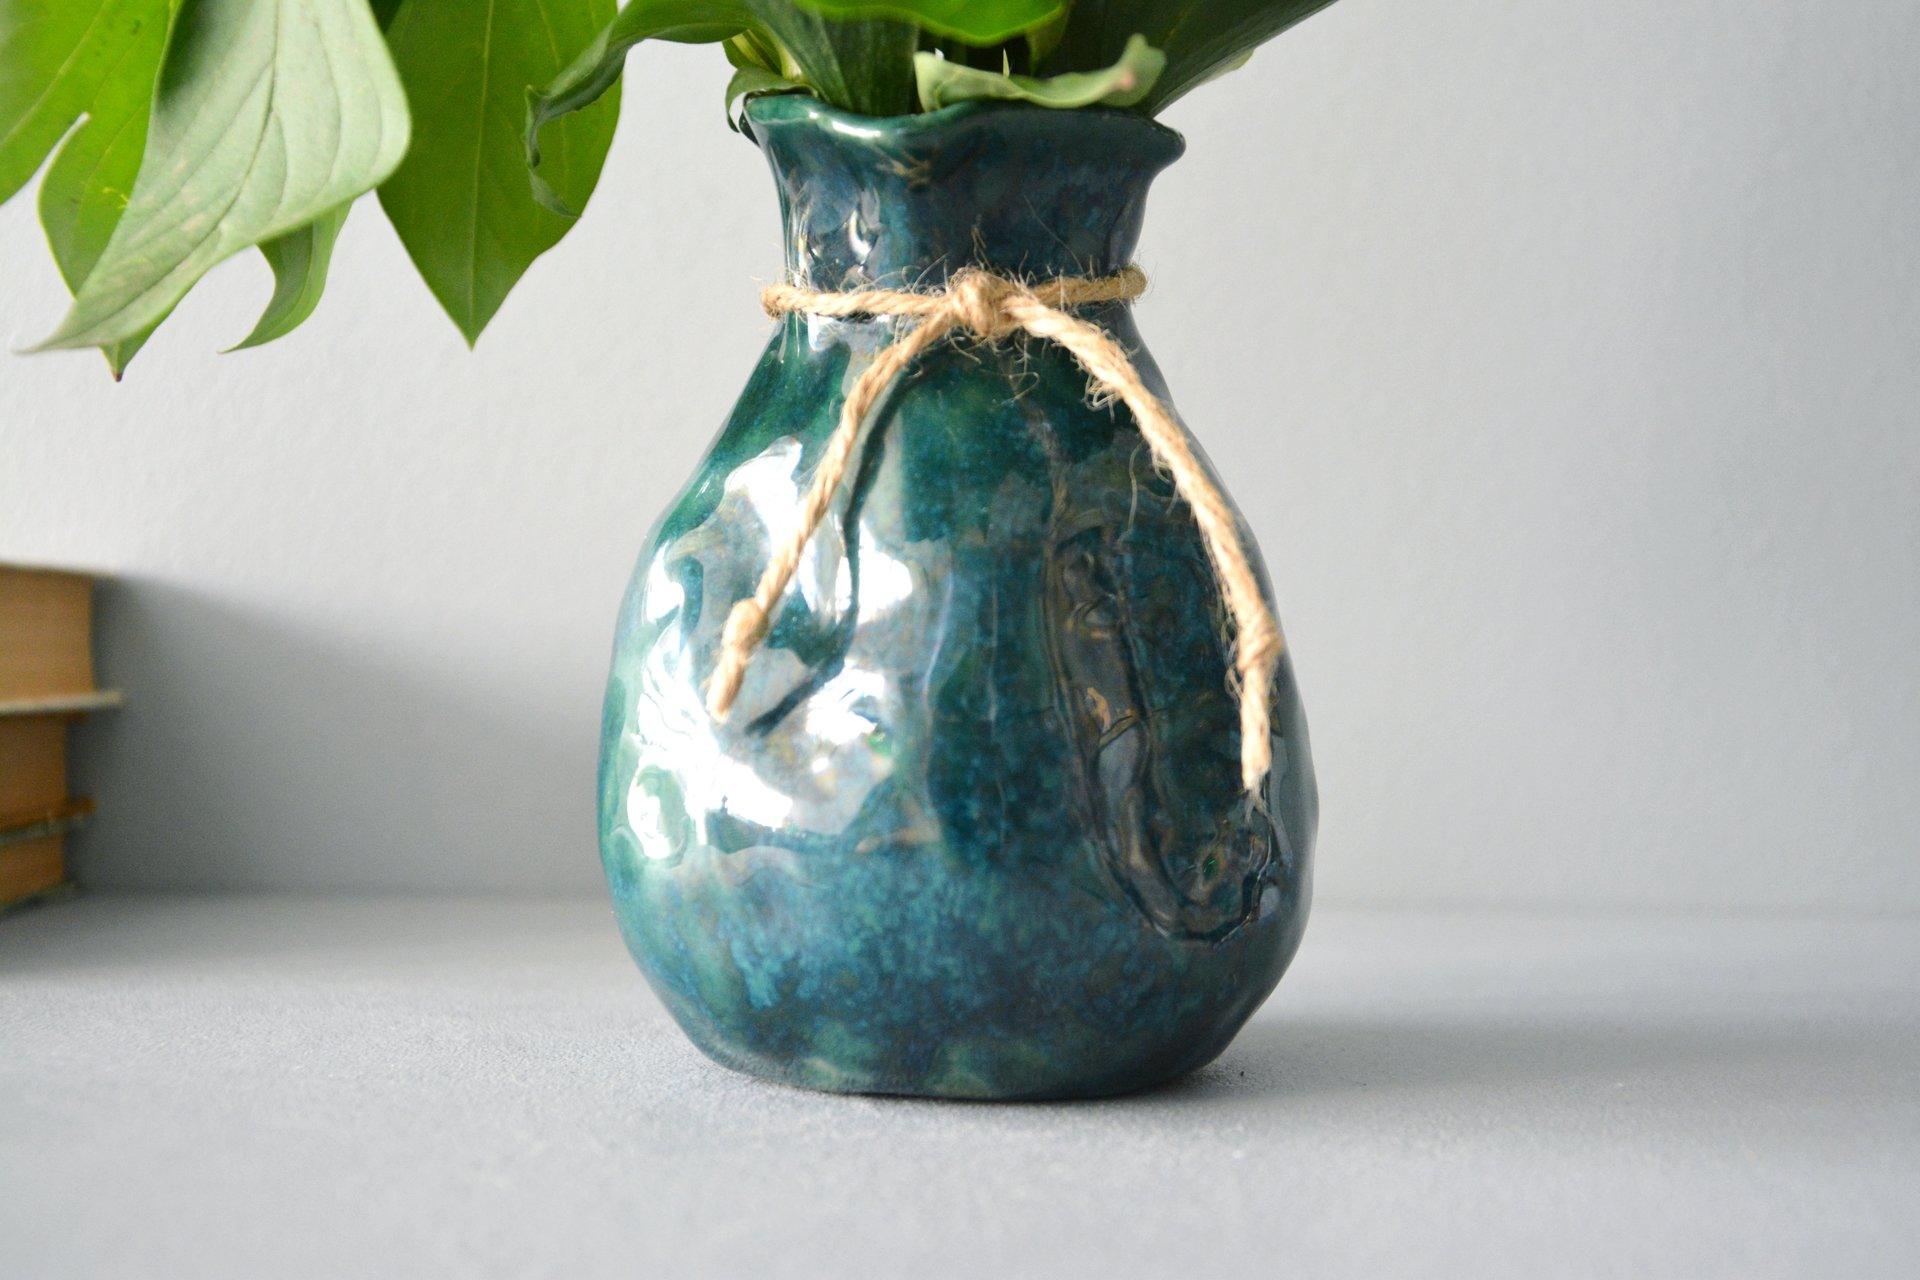 Exclusive vase is an incredible green bag, height - 12 cm, color - deep emerald, photo 7 of 8. 1027.